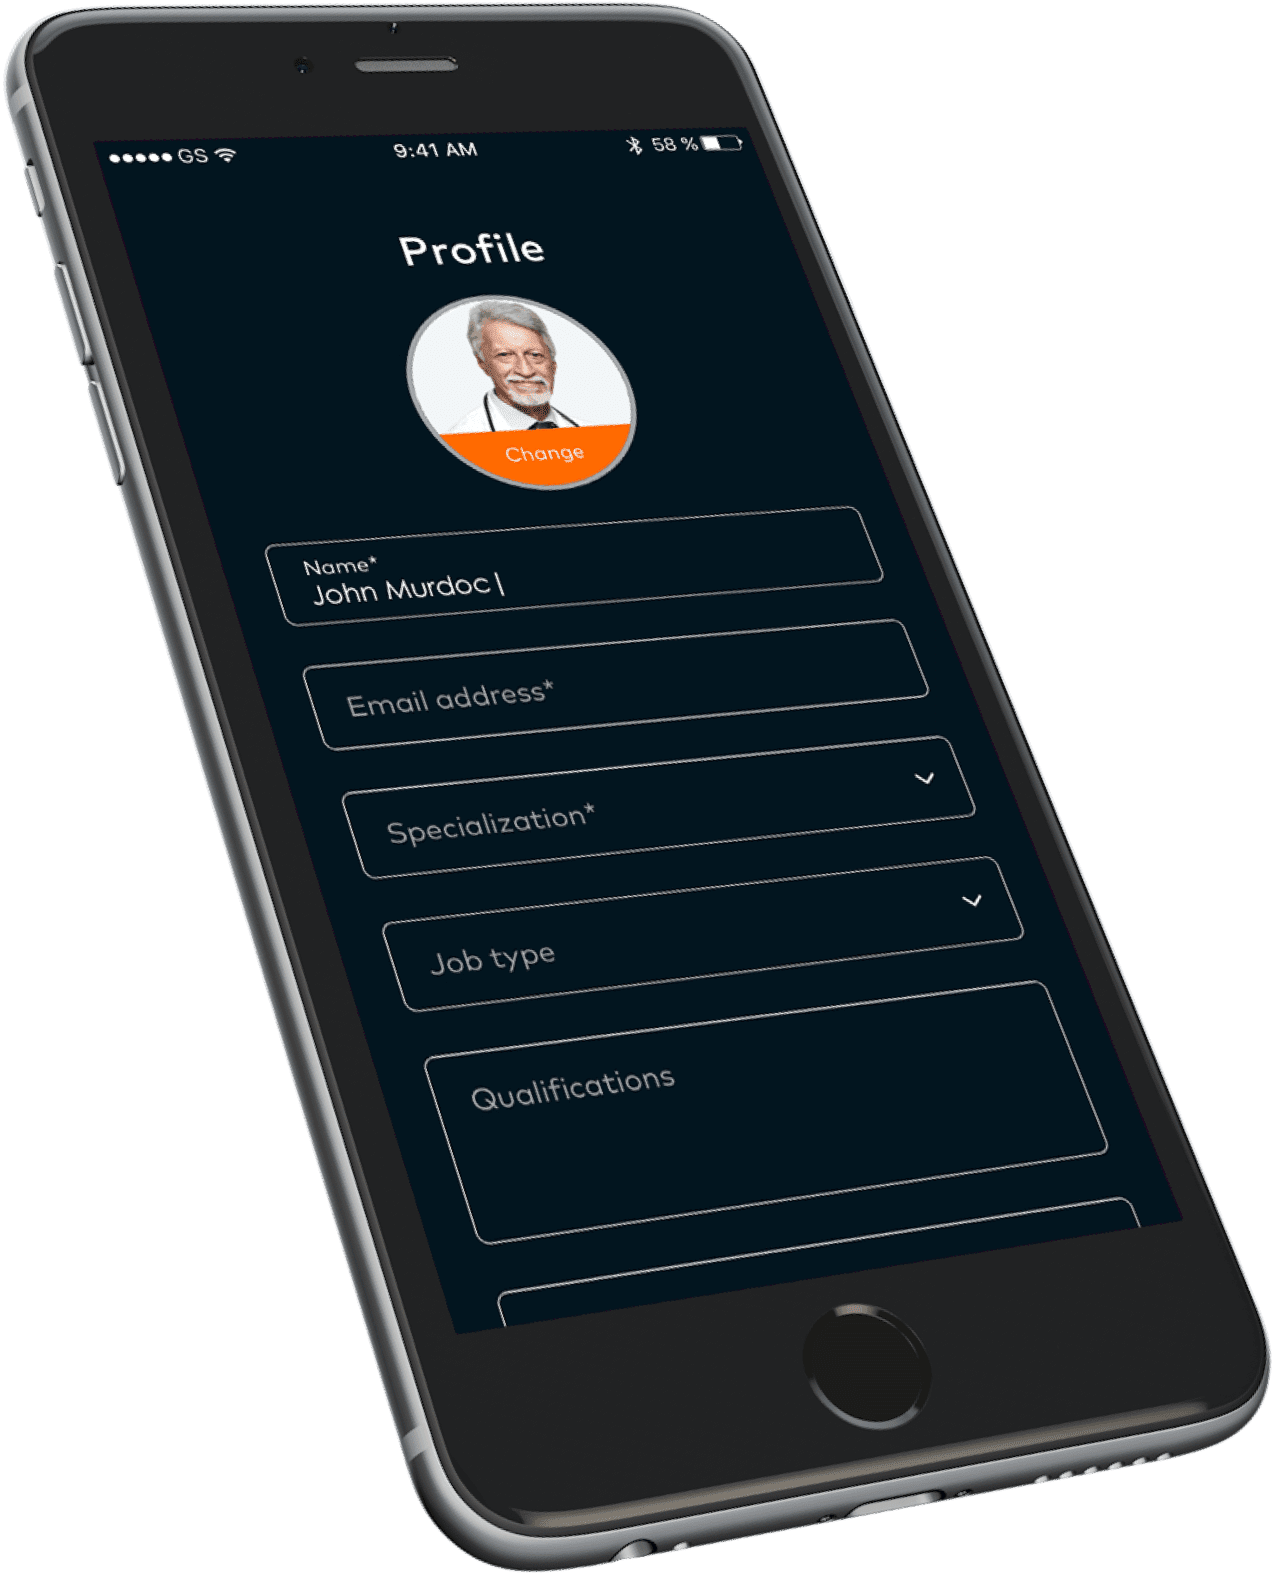 Example of a physician profile on Athena Health app shown on a mobile device